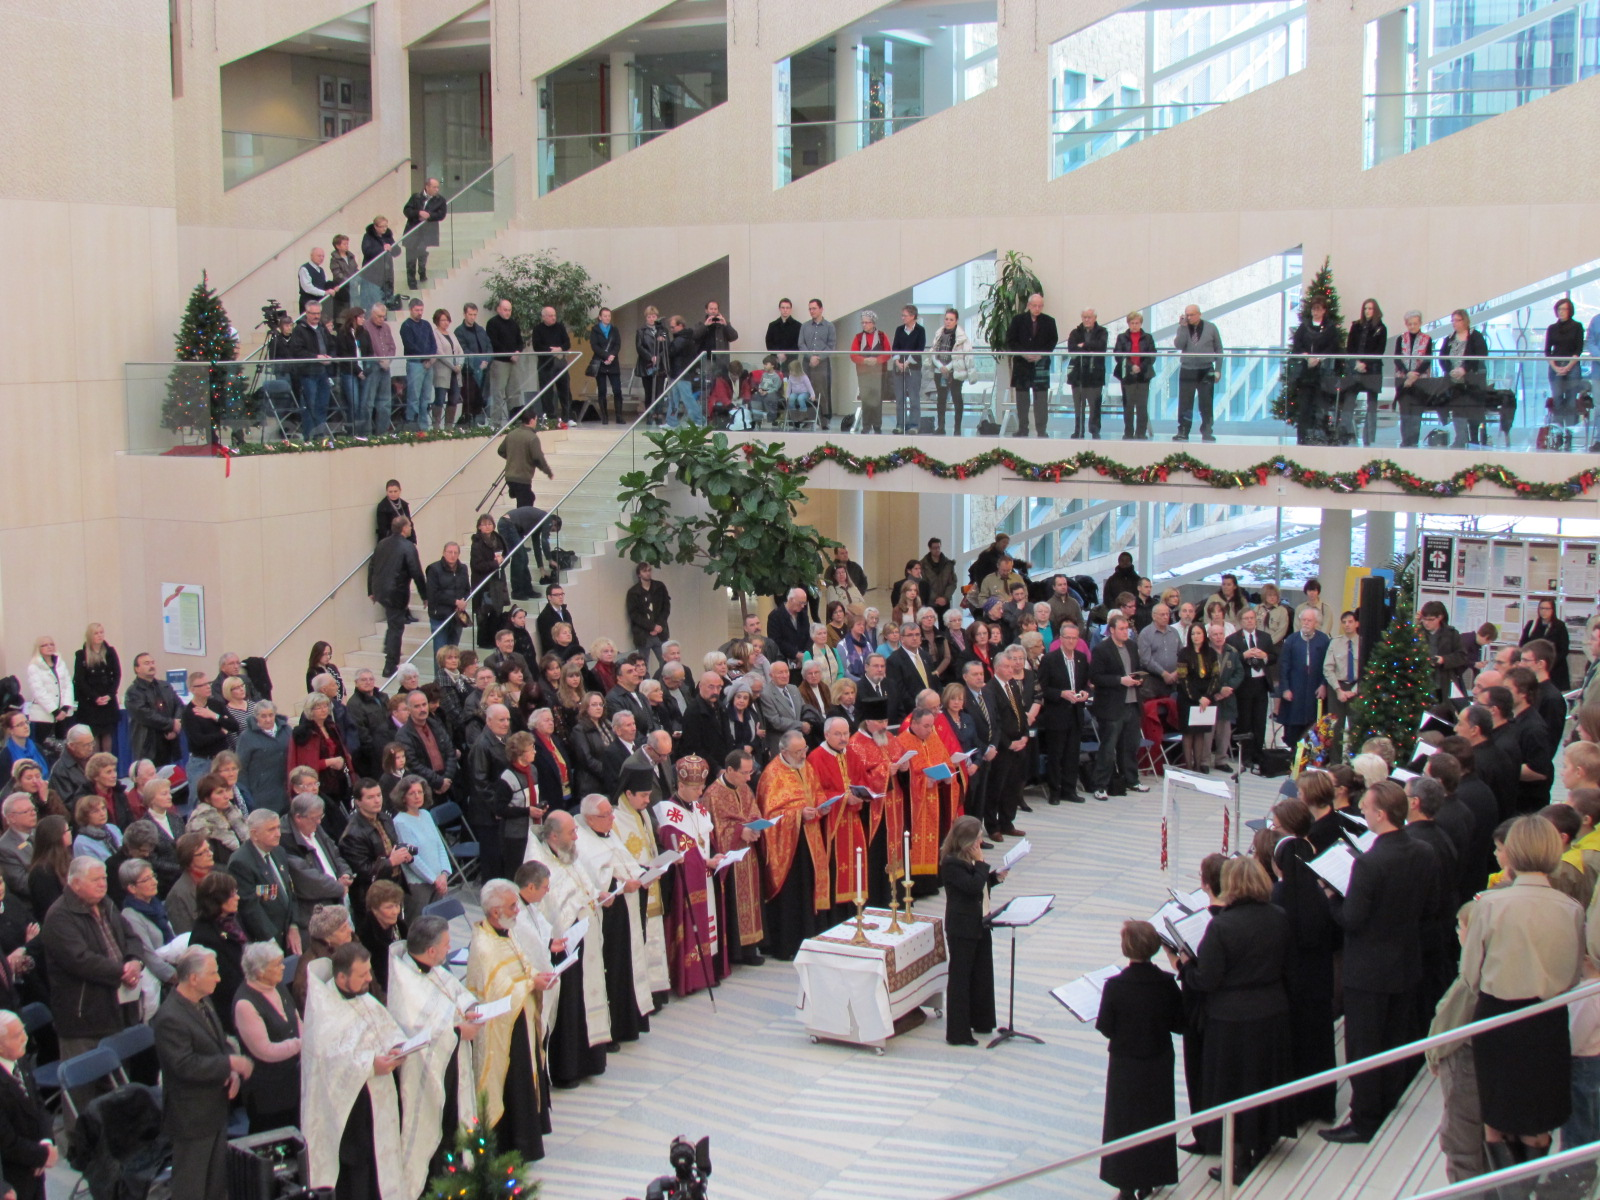 Address to the Assembly – The 78th Commemoration of the Anniversary of the Holodomor 1932-33 in Ukraine